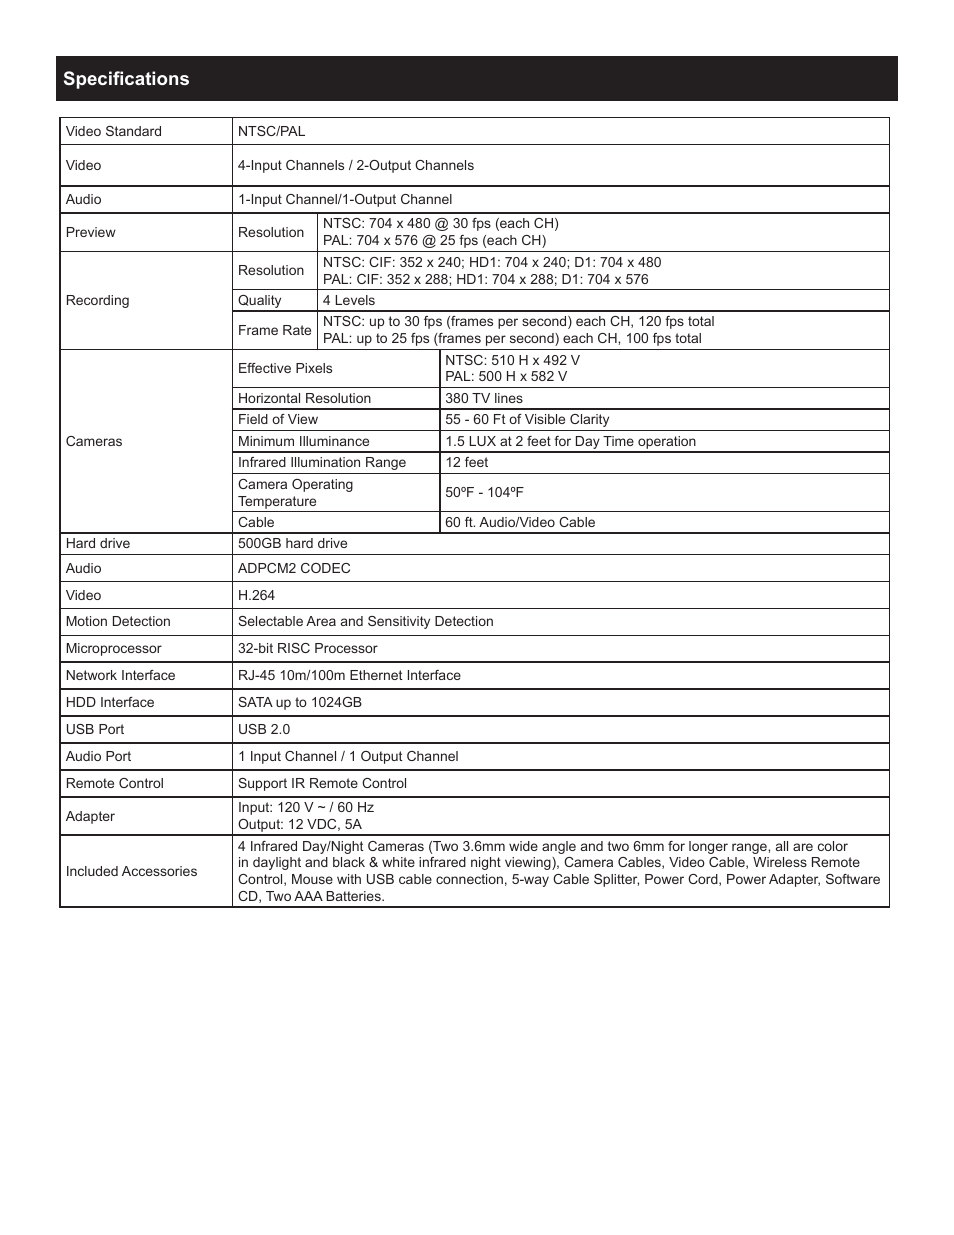 Specifications | Harbor Freight Tools BUNKER HILL SECURITY 68332